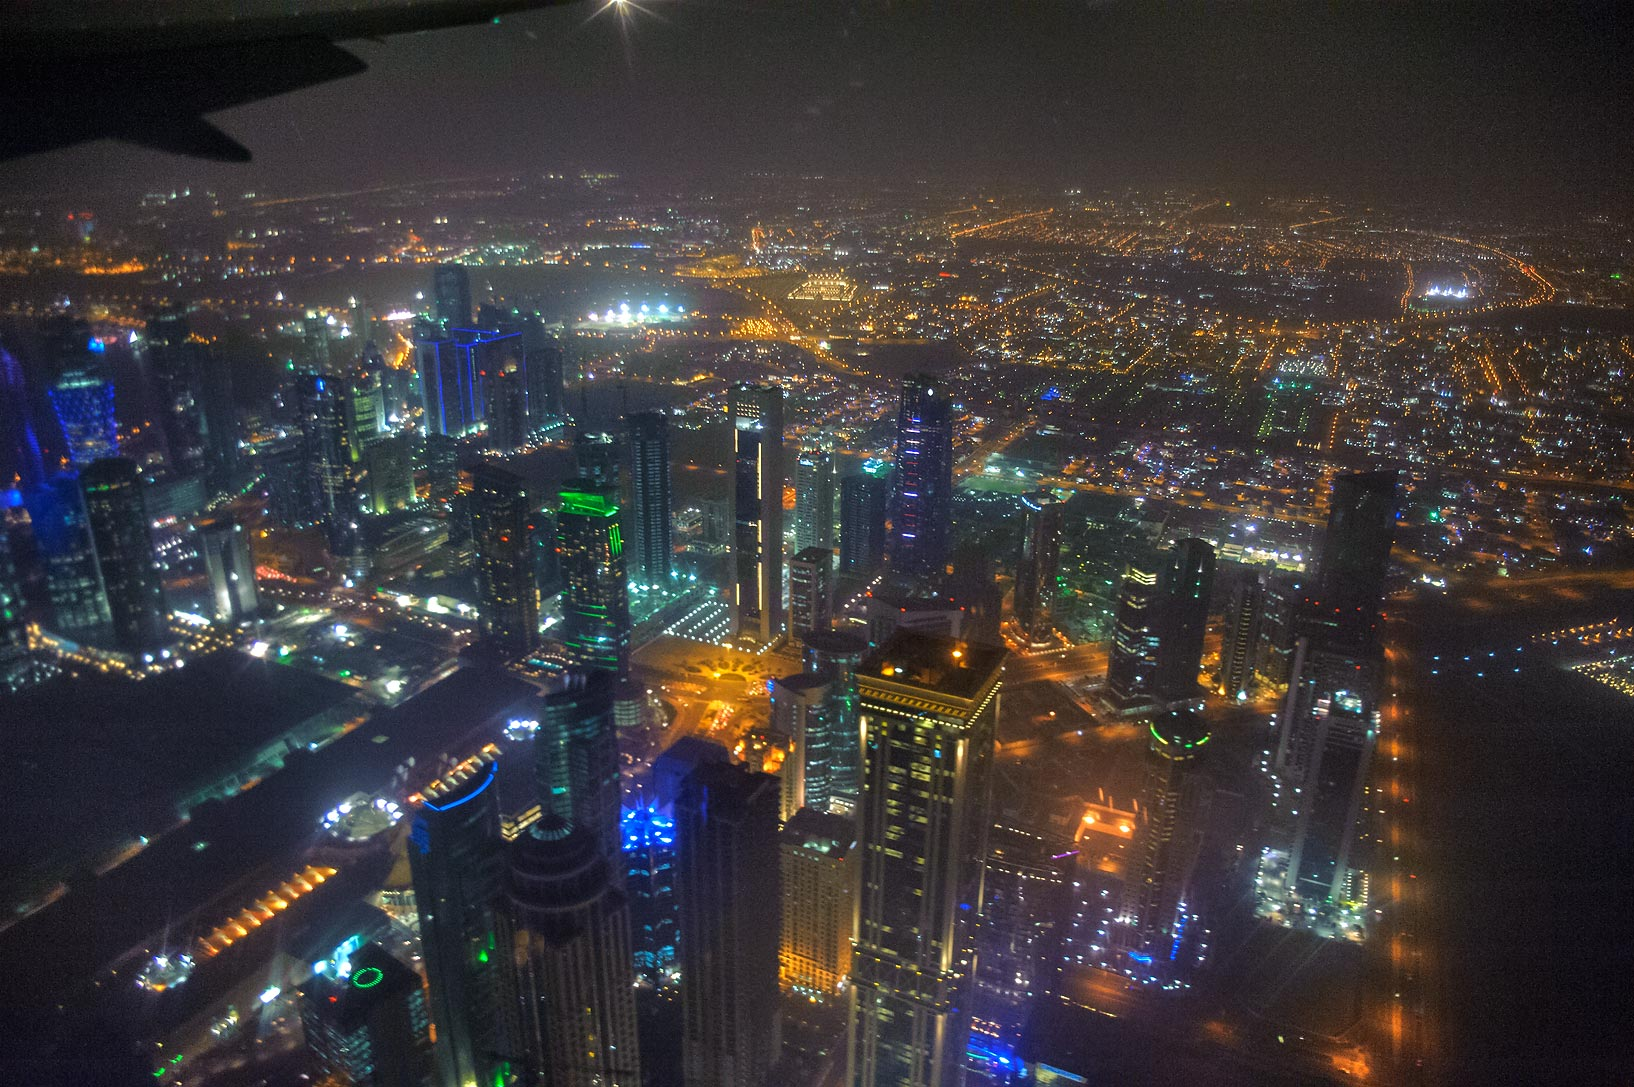 Dafna (West Bay) area of Doha from a window of an airplane. Qatar